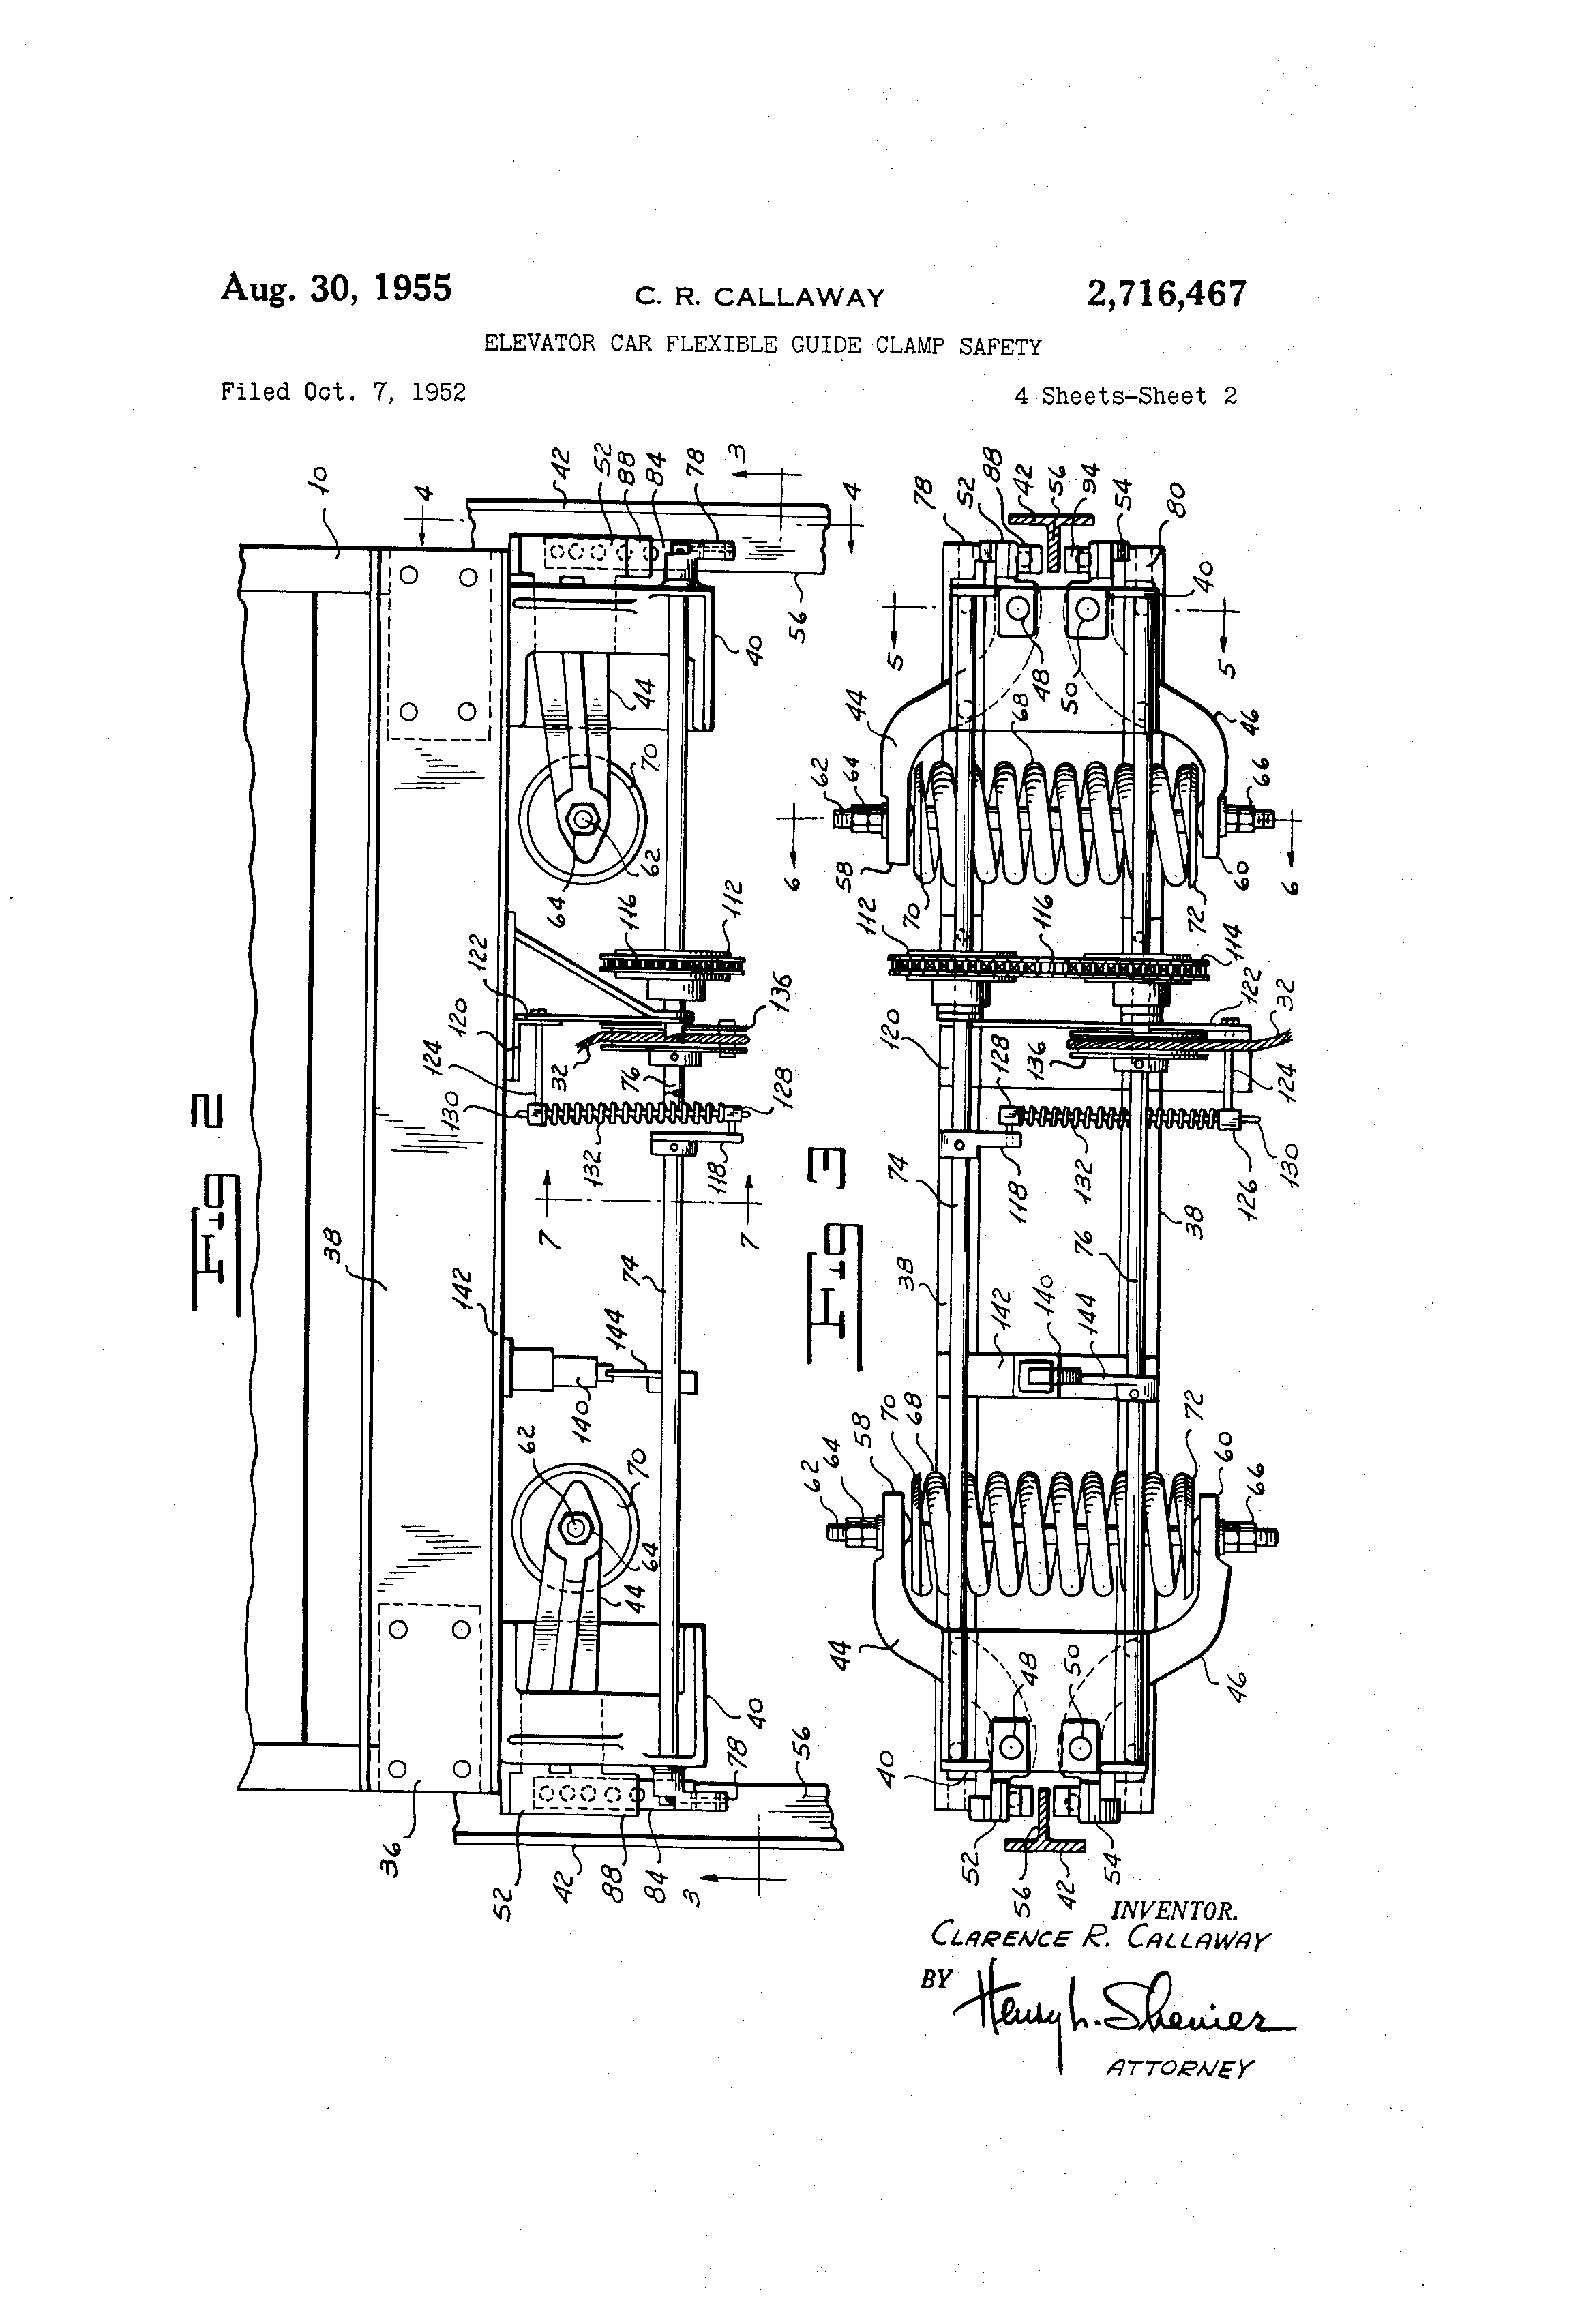 patent us2716467 - elevator car flexible guide clamp safety